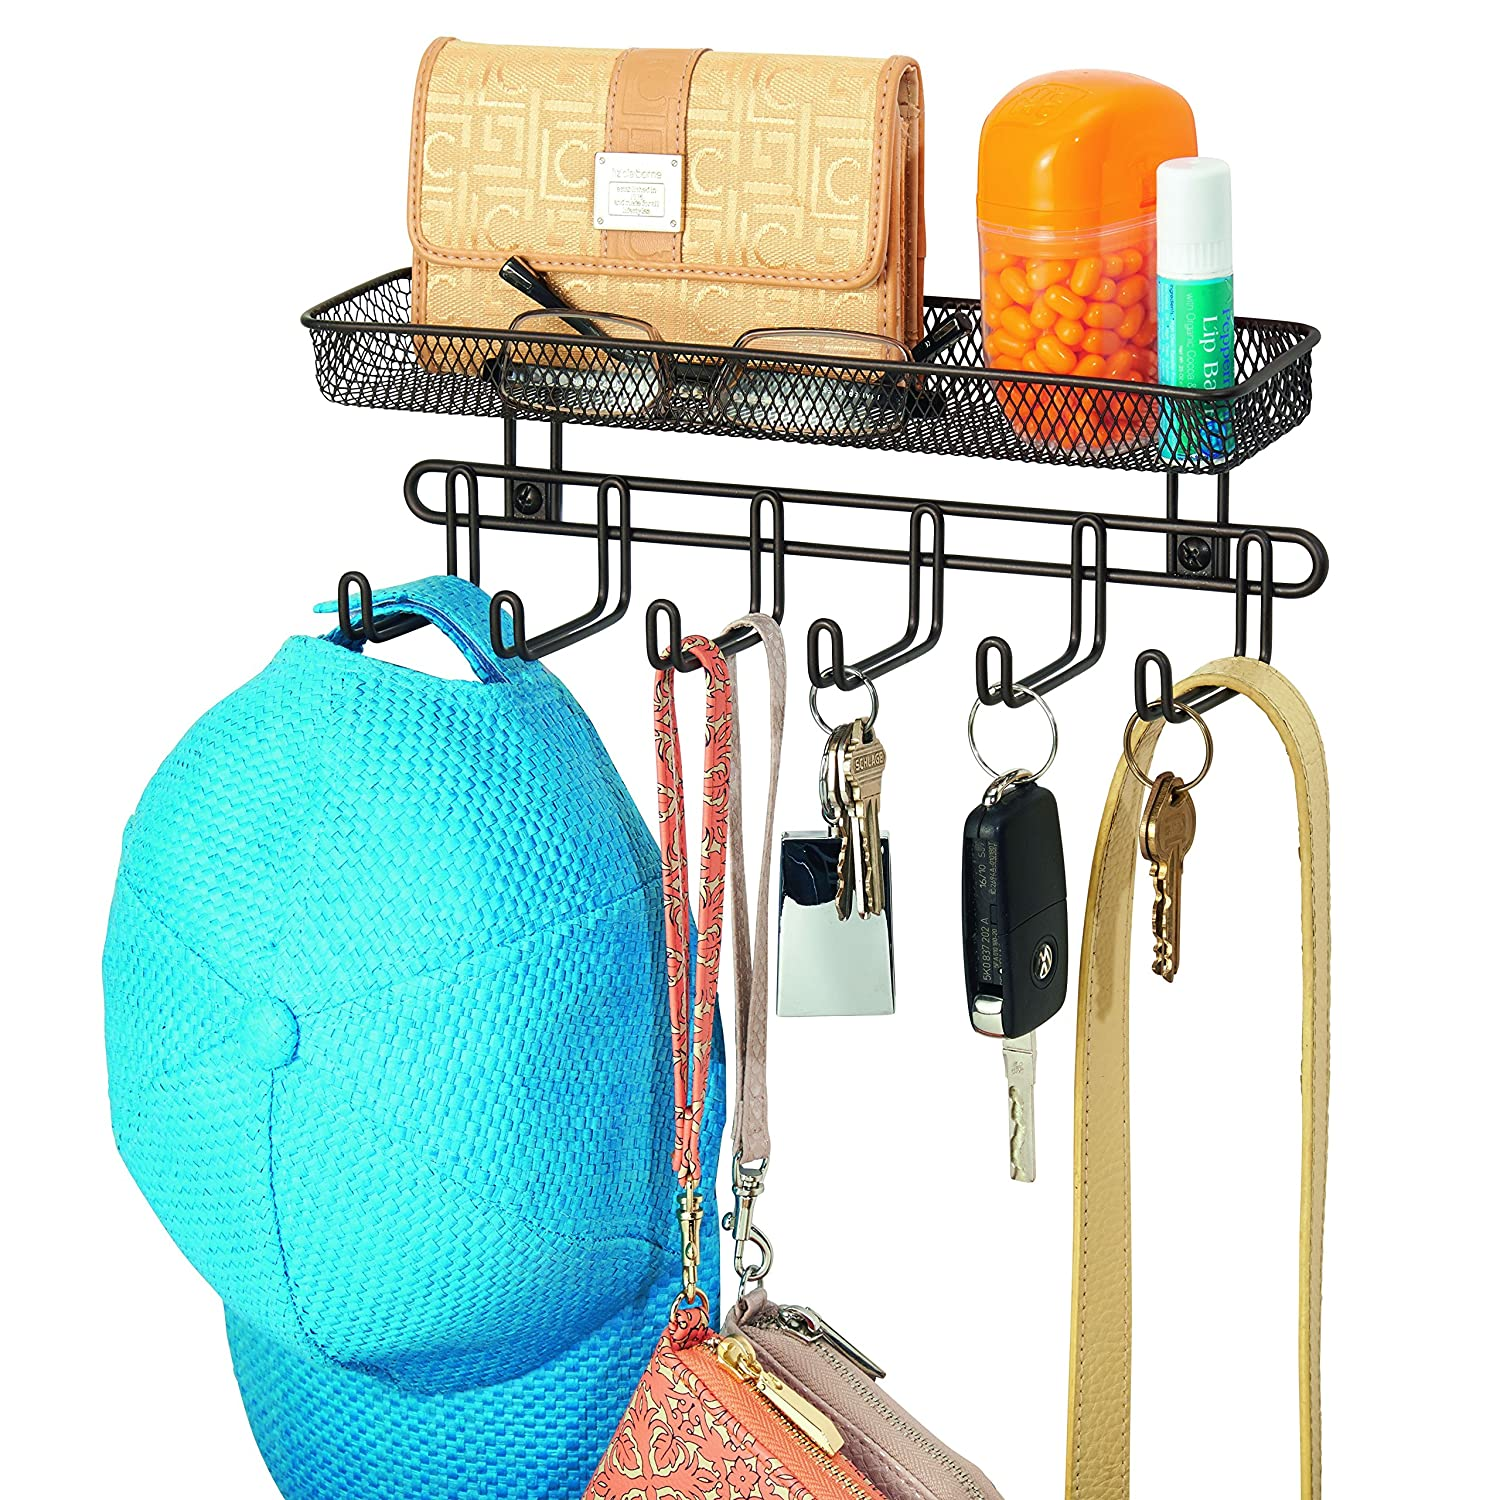 InterDesign Classico Wall Mount Entryway Organizer for Keys, Hats, Wallets, Clutch Purses, Cell Phones, Sunglasses - 11